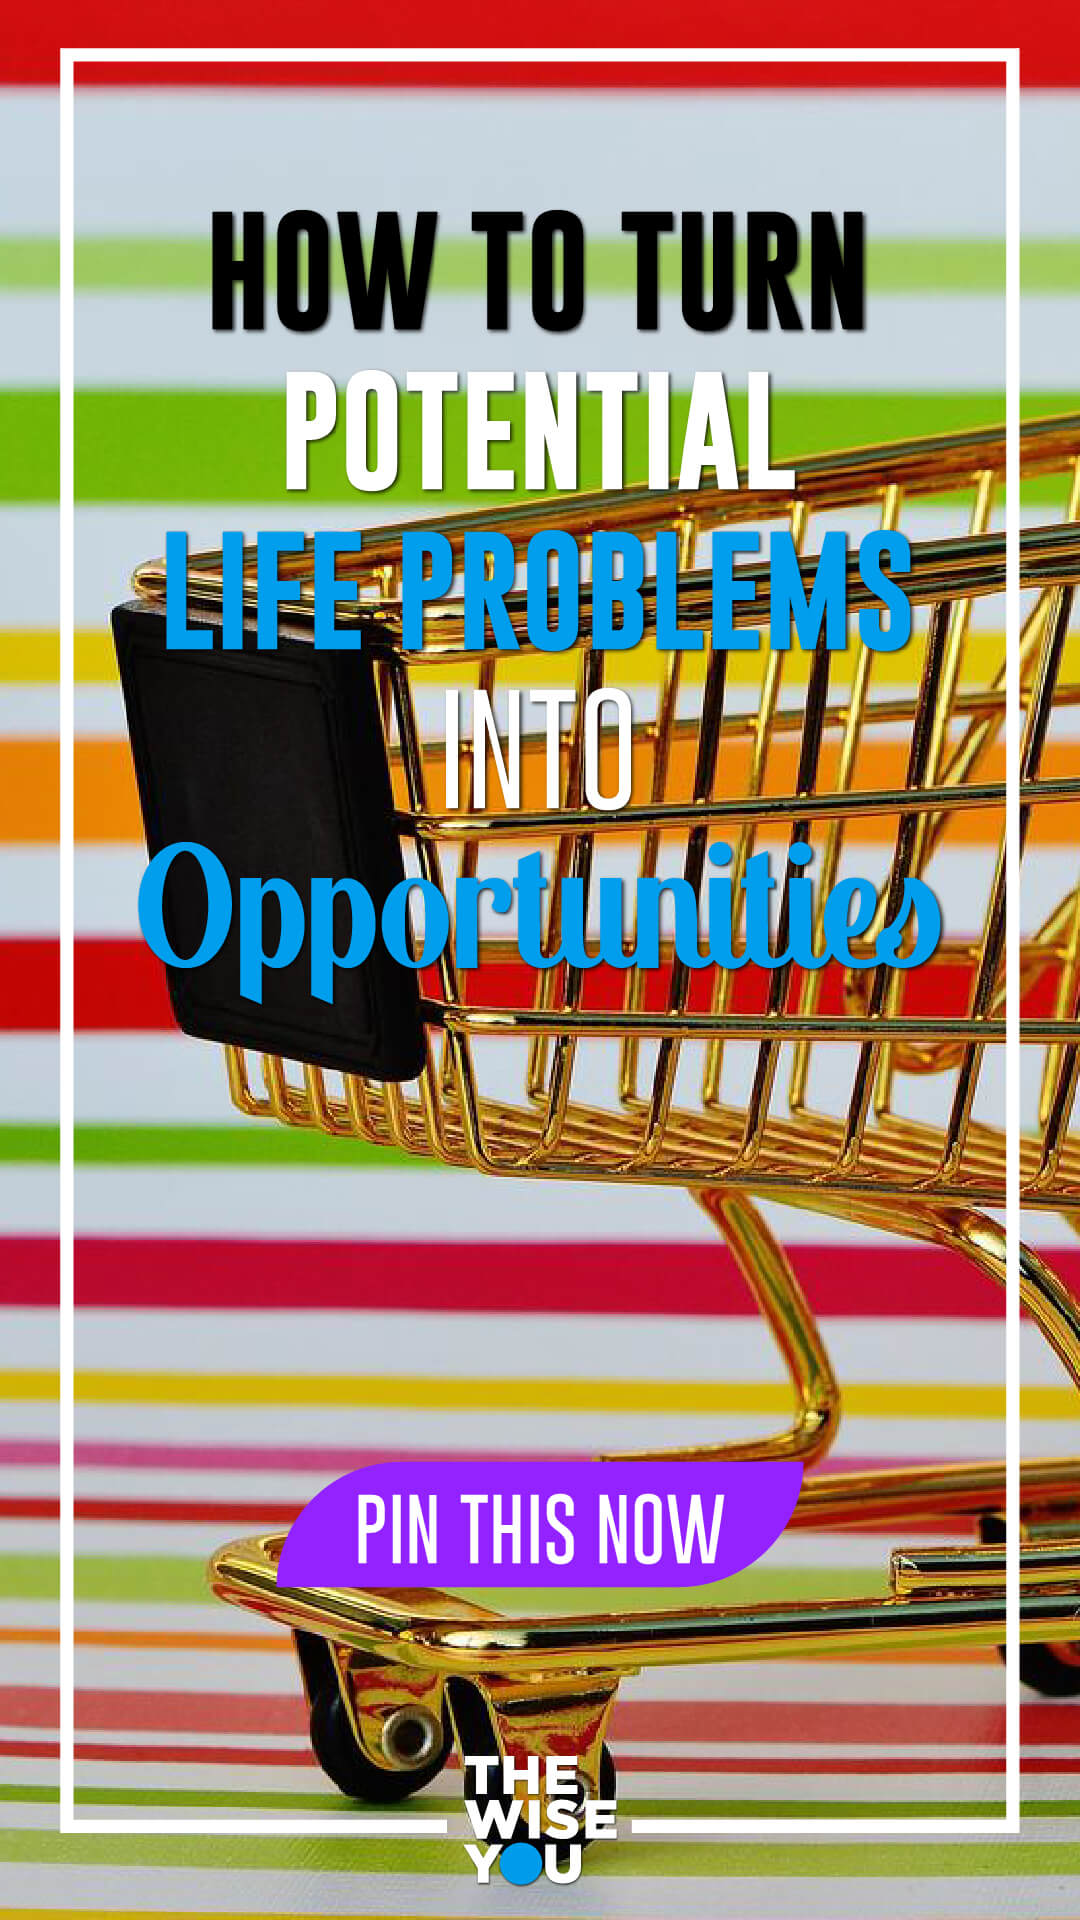 How to Turn Potential Life Problems into Opportunities?